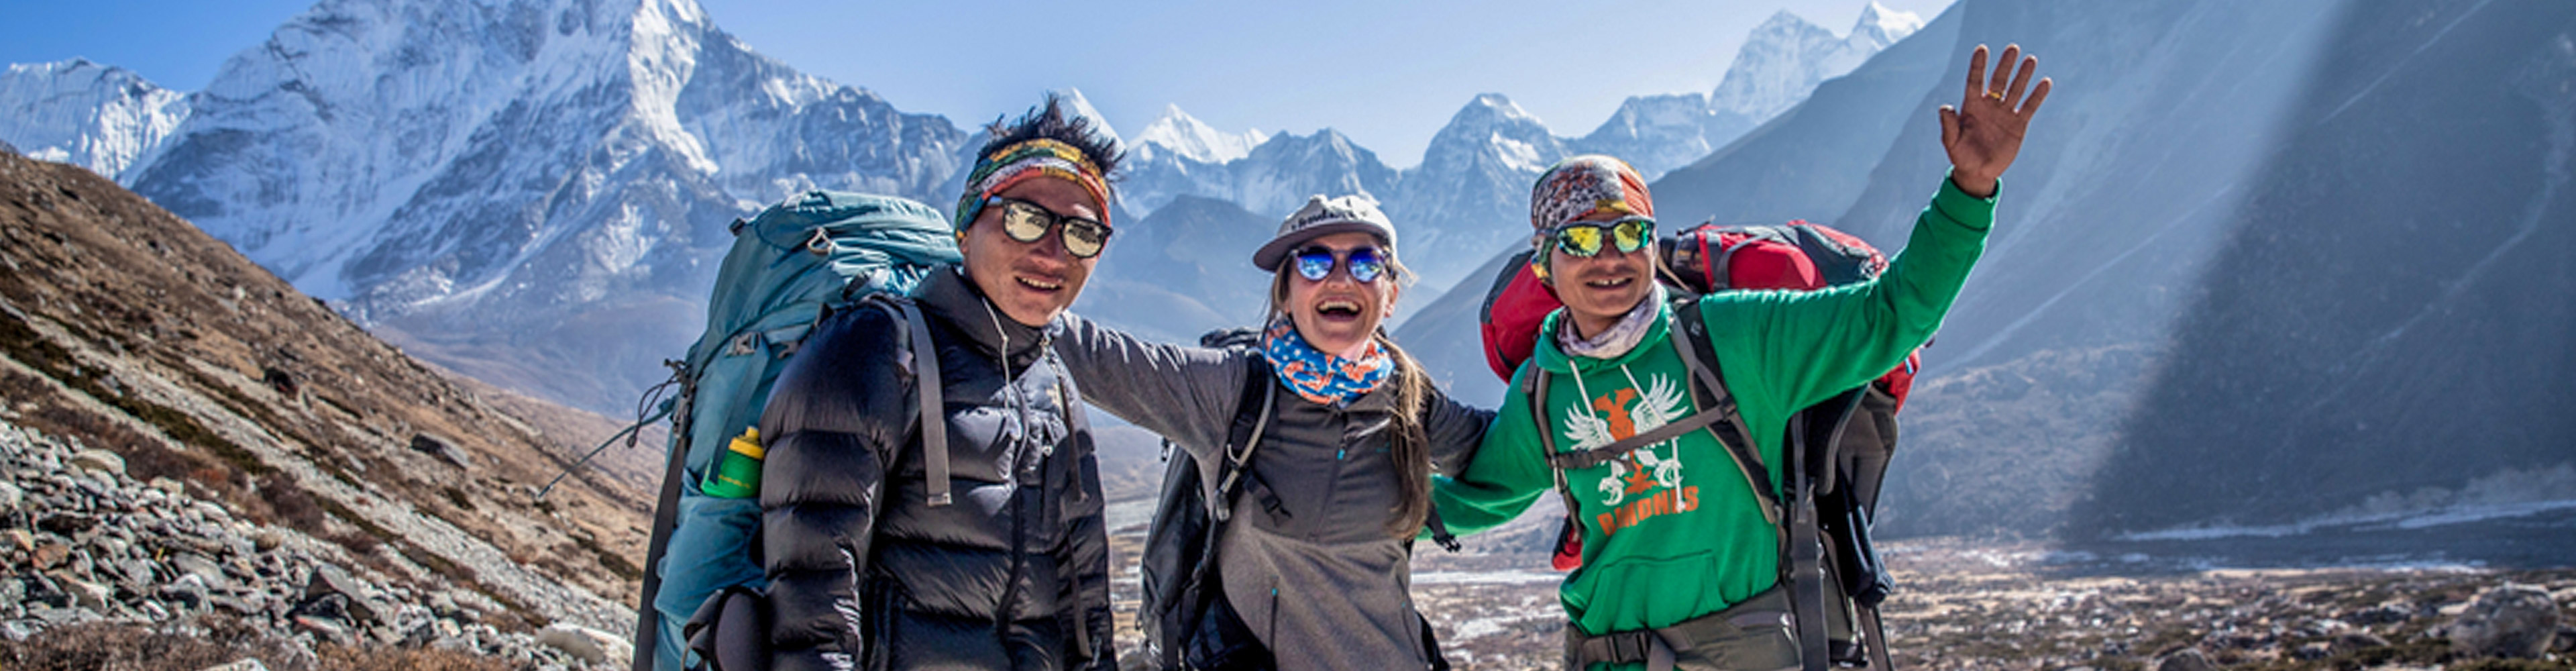 Everest Base Camp Trek Southall Travel